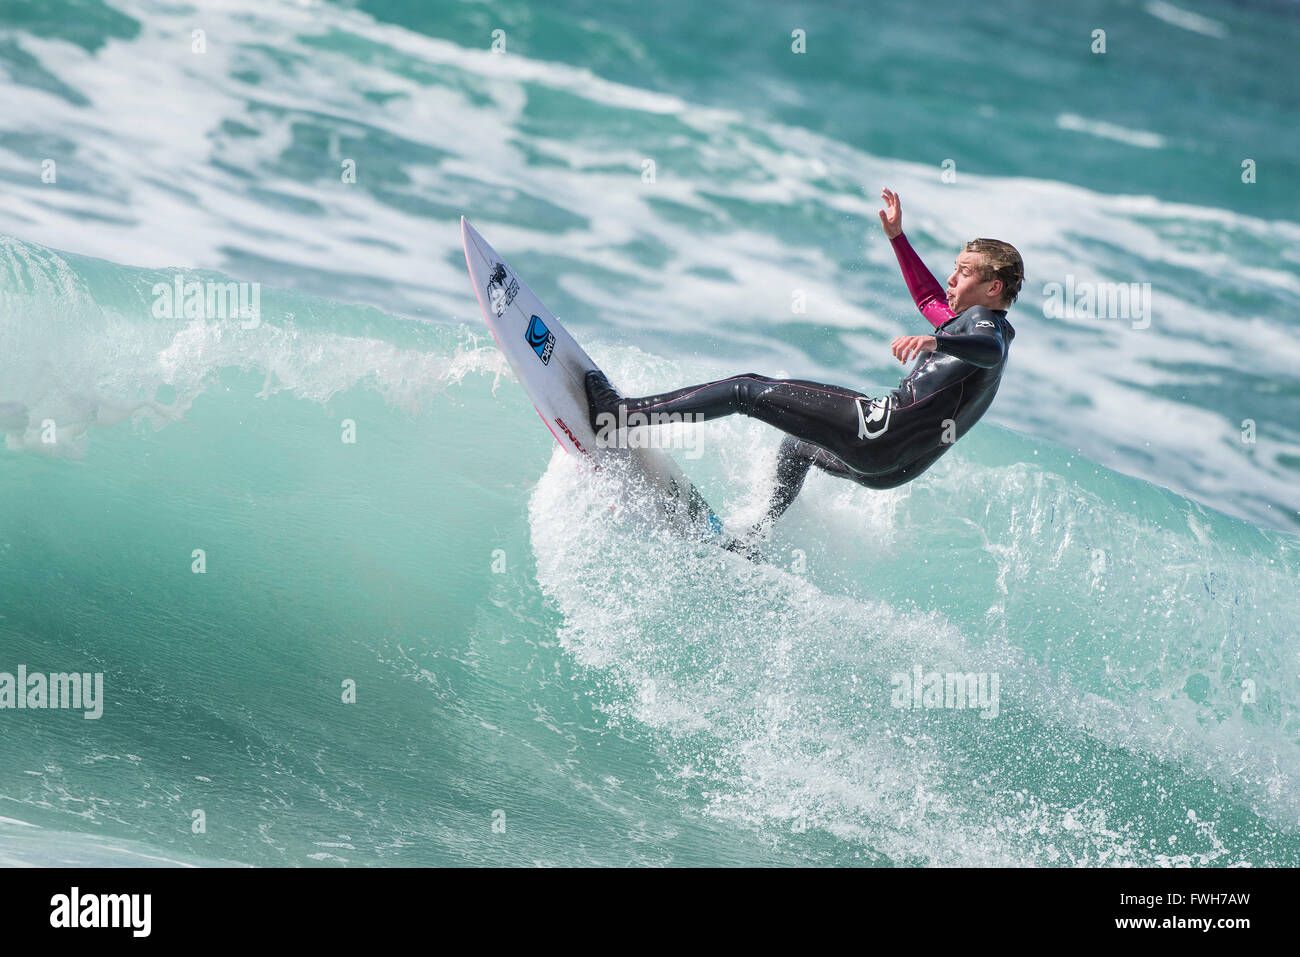 Fistral Beach, Newquay, Cornwall, 5th April 2016. UK Weather: A local surfer enjoys the windy weather conditions - Stock Image